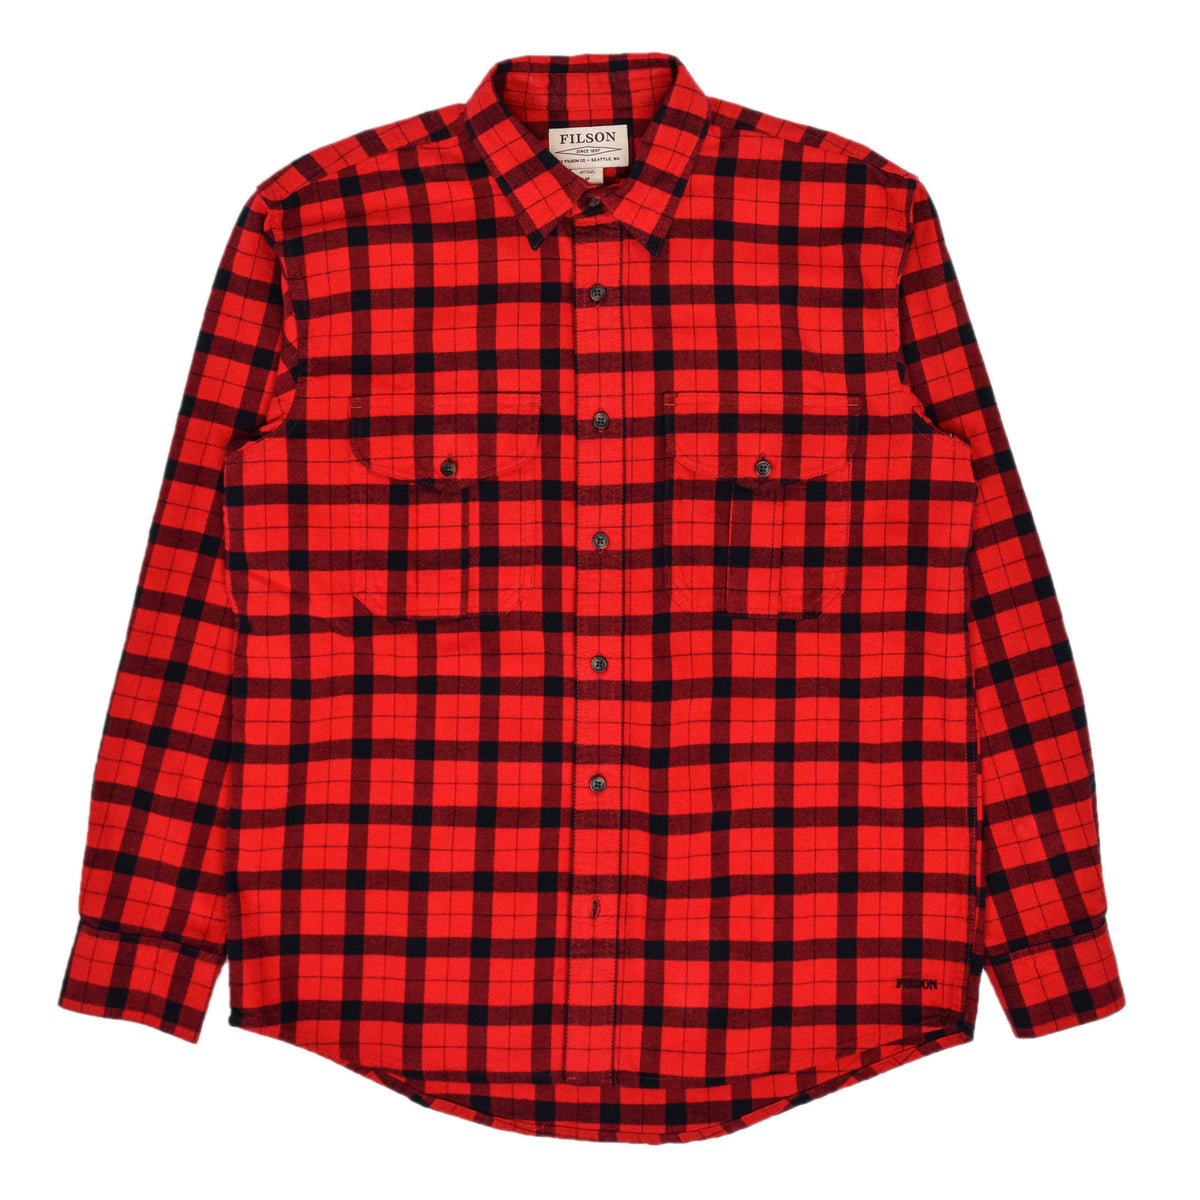 Filson Alaskan Guide Cotton Flannel Shirt Red/Black front